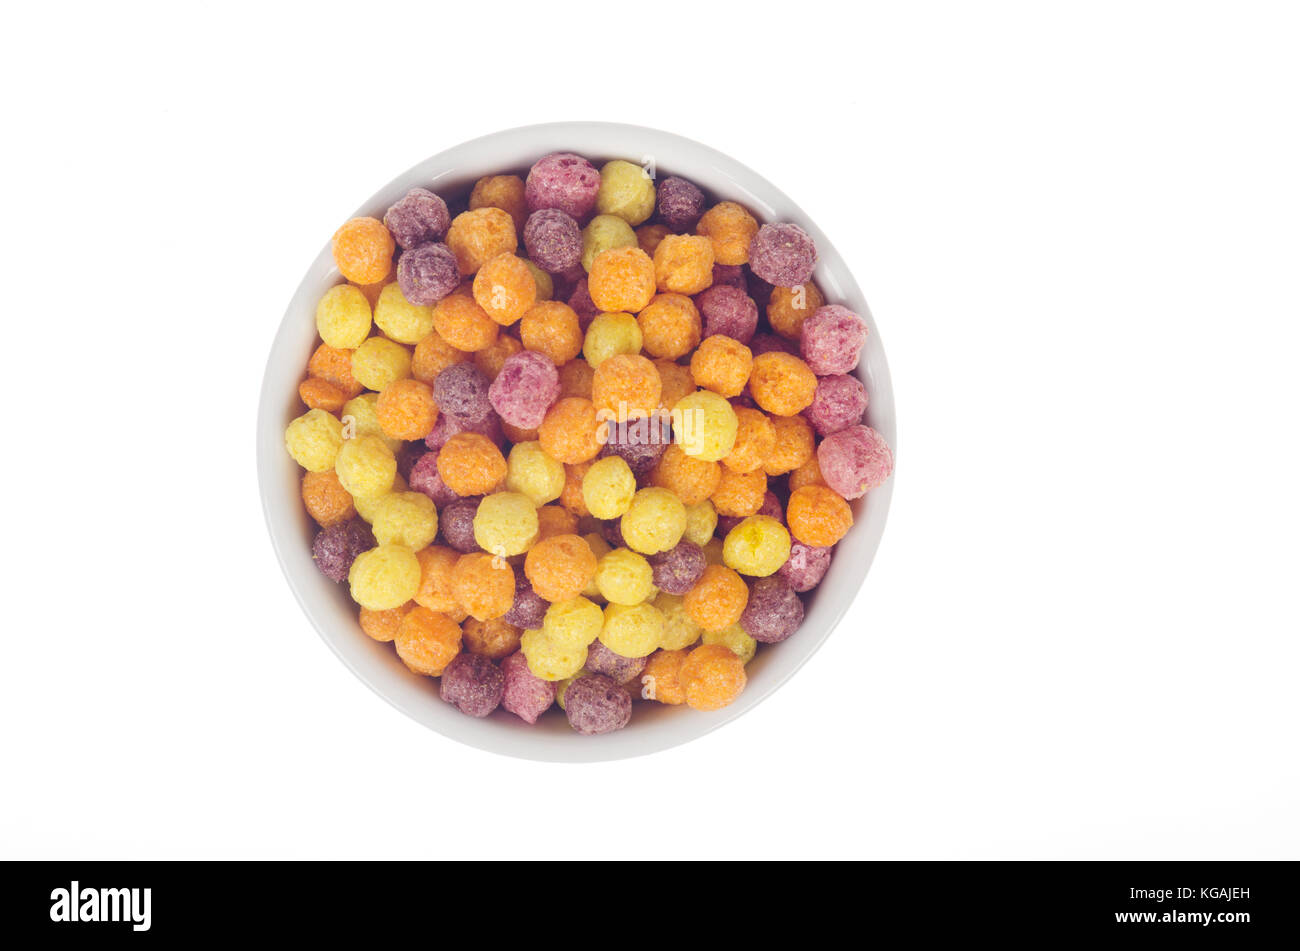 Bowl of Trix cereal by General Mills from above bird's eye view on white background - Stock Image